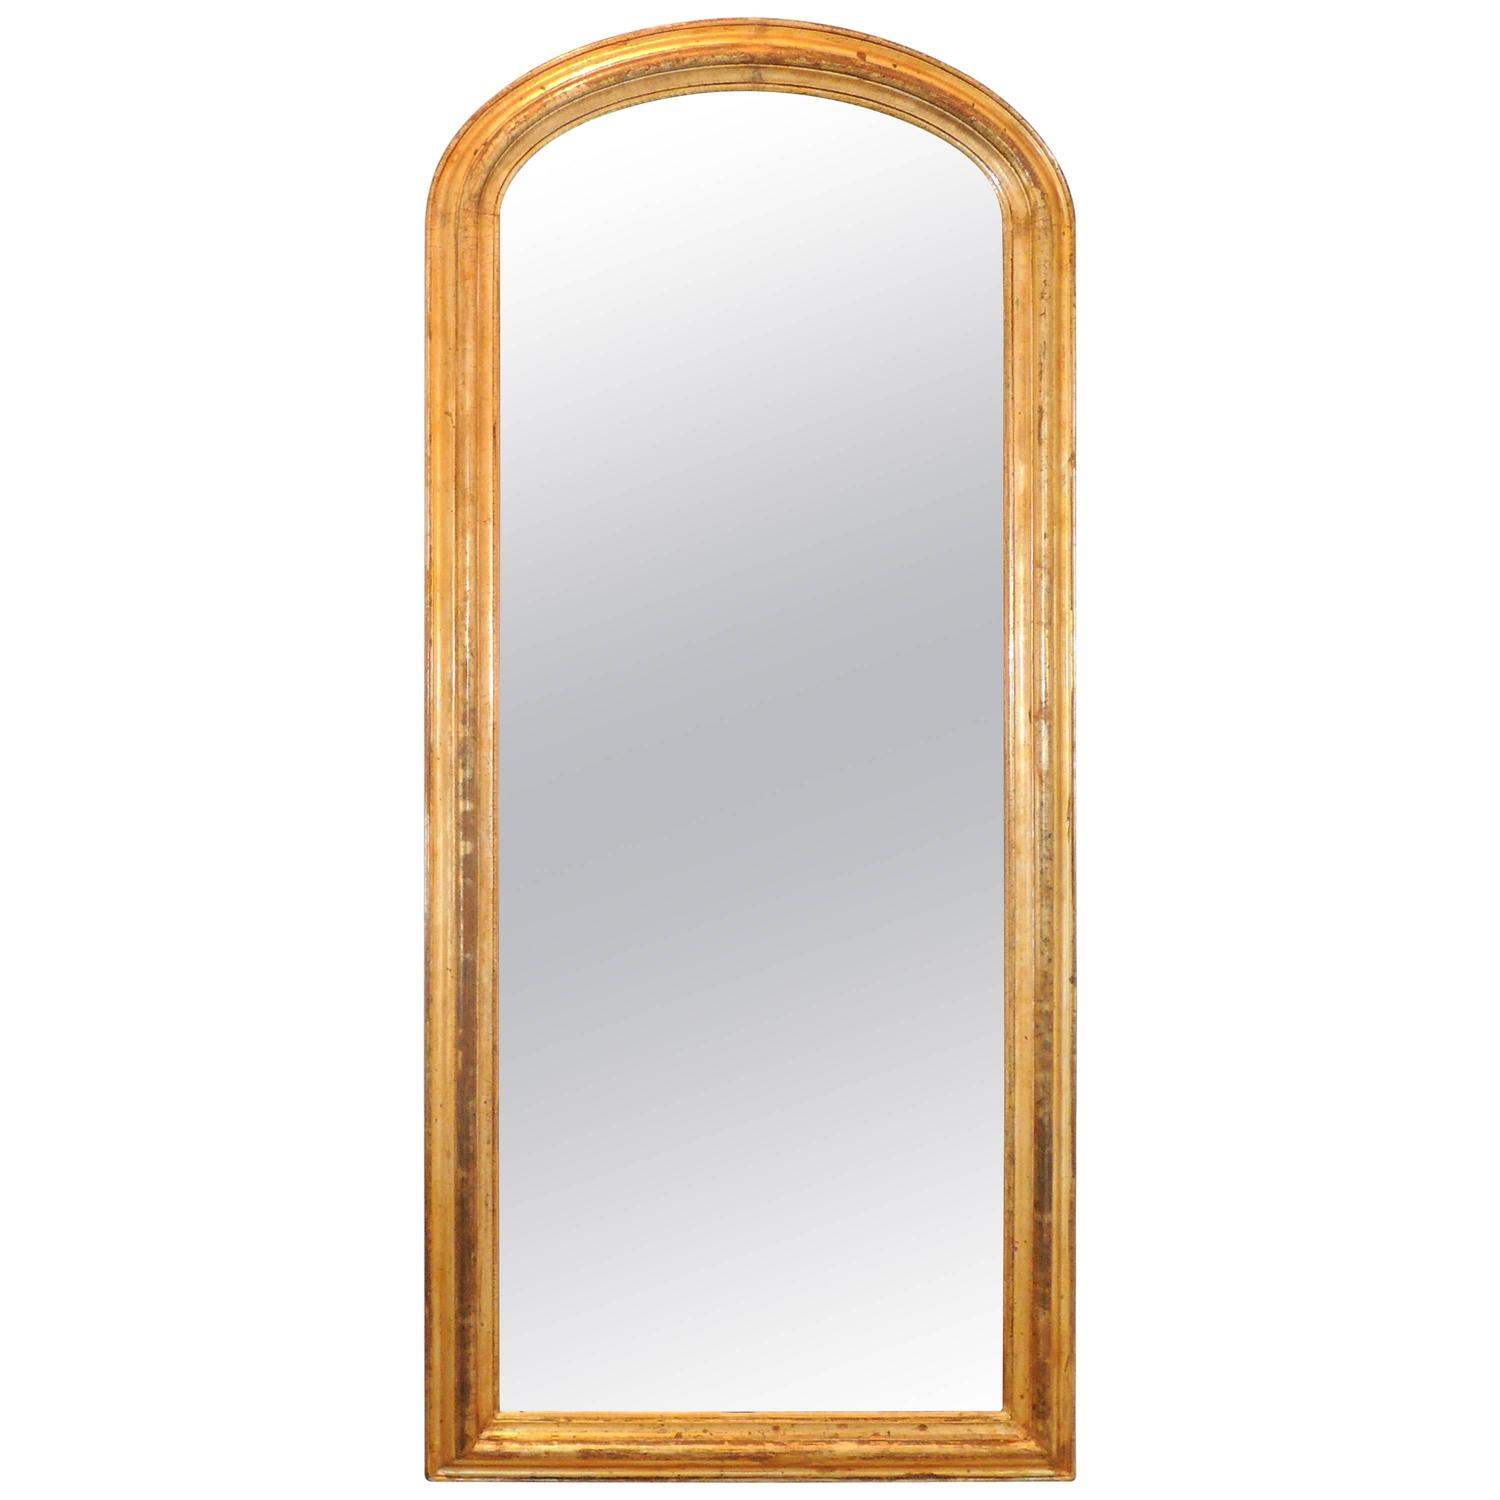 Oval arched full length 19th century mirror for sale at for Floor length mirror for sale